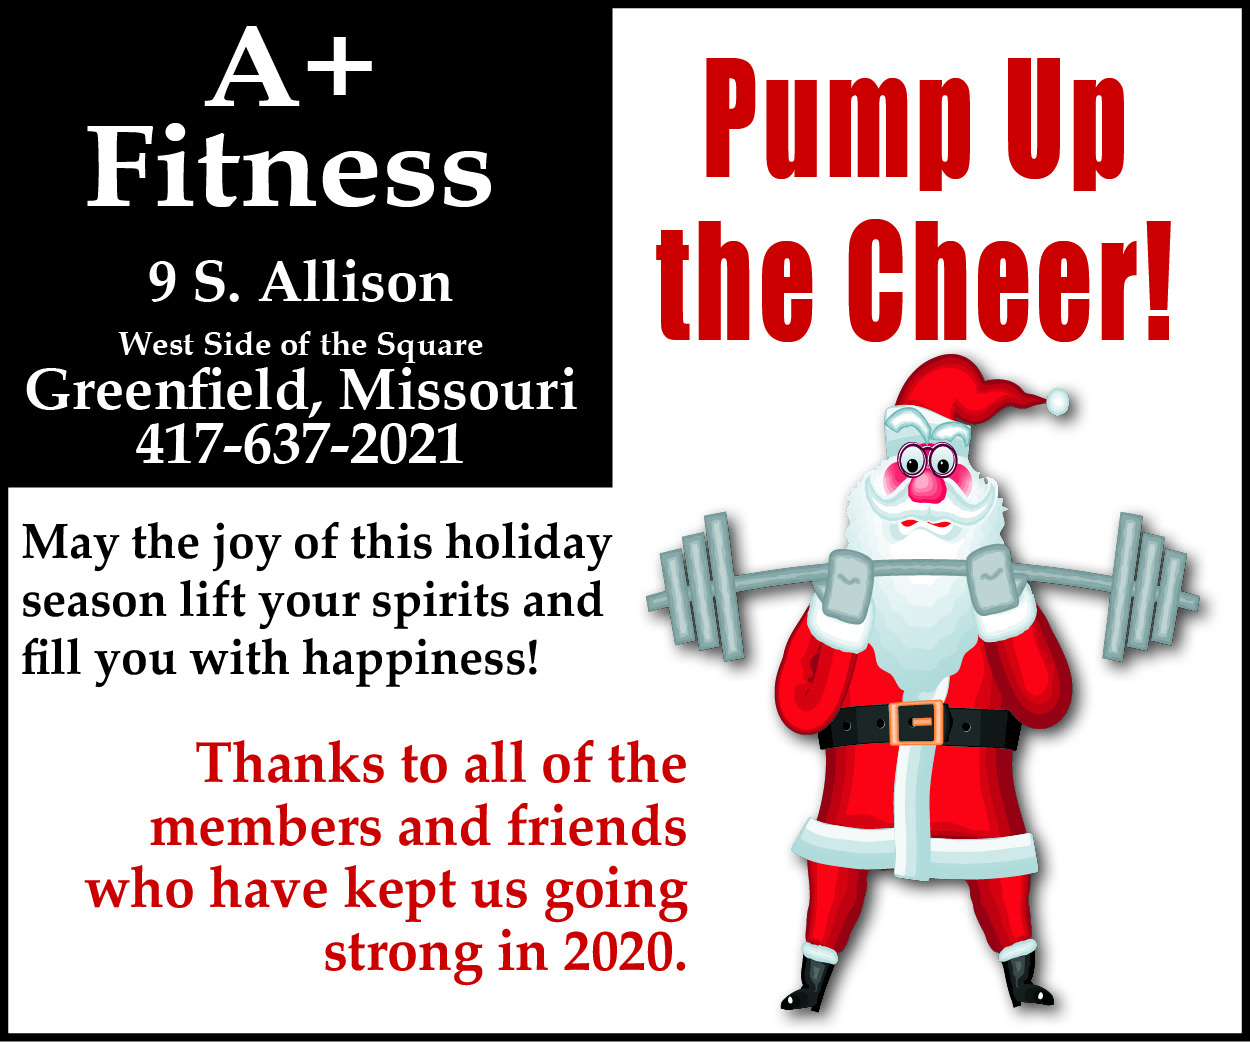 A+ Fitness Christmas Greetings 2010